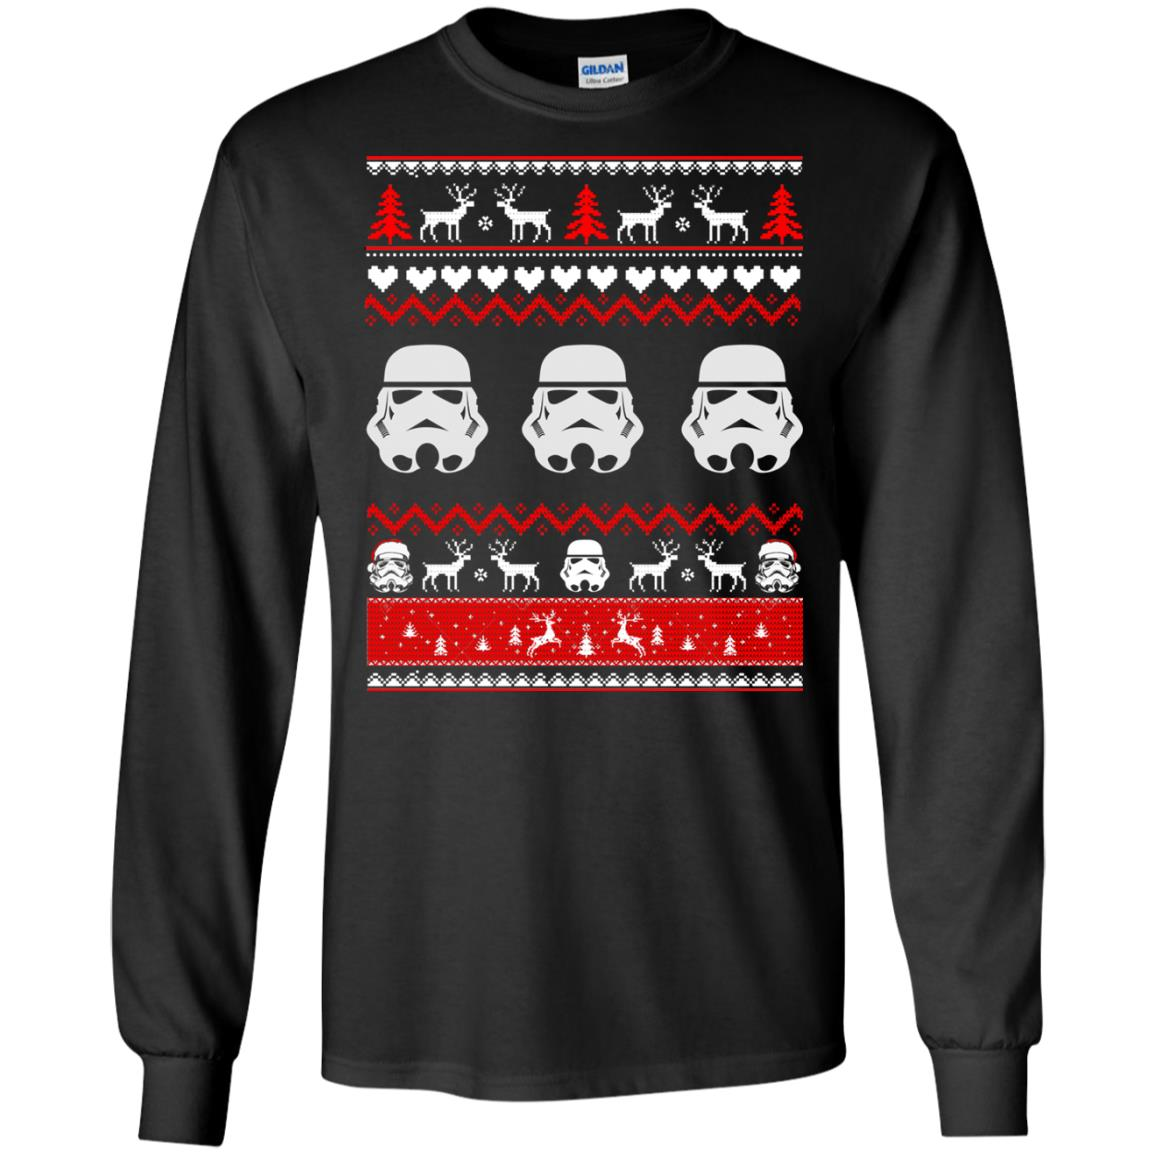 image 1724 - Stormtrooper Star Wars Ugly Christmas Sweatshirt, Shirt